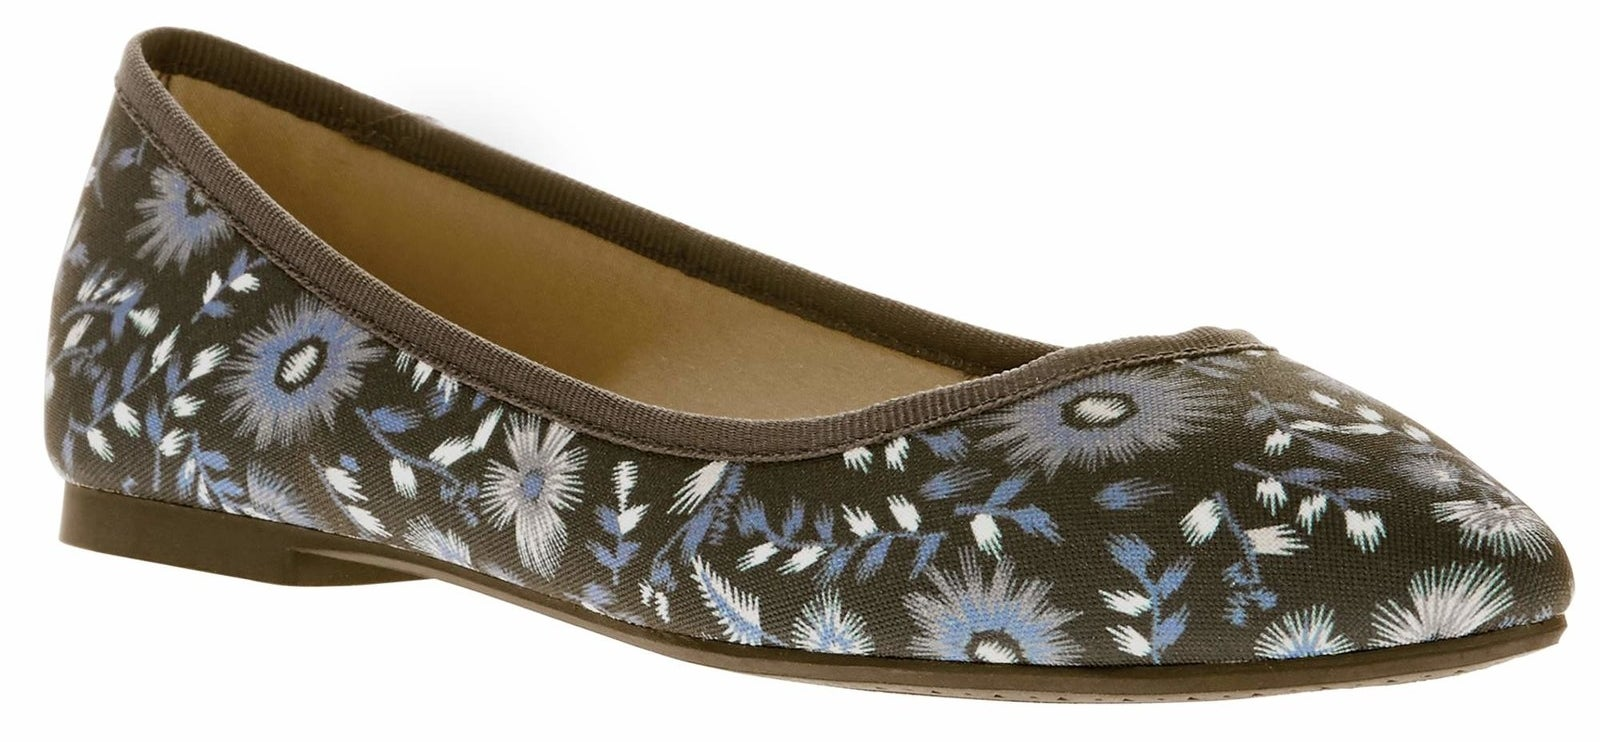 """Promising review: """"Very pleased. Extremely comfortable and just what I was looking for. Inexpensive yet stylish flats for wearing with jeans. Wish there were more colors, I'd buy them all!"""" —NinaPrice: $9.87 (available in sizes 6–11 and in four styles)"""